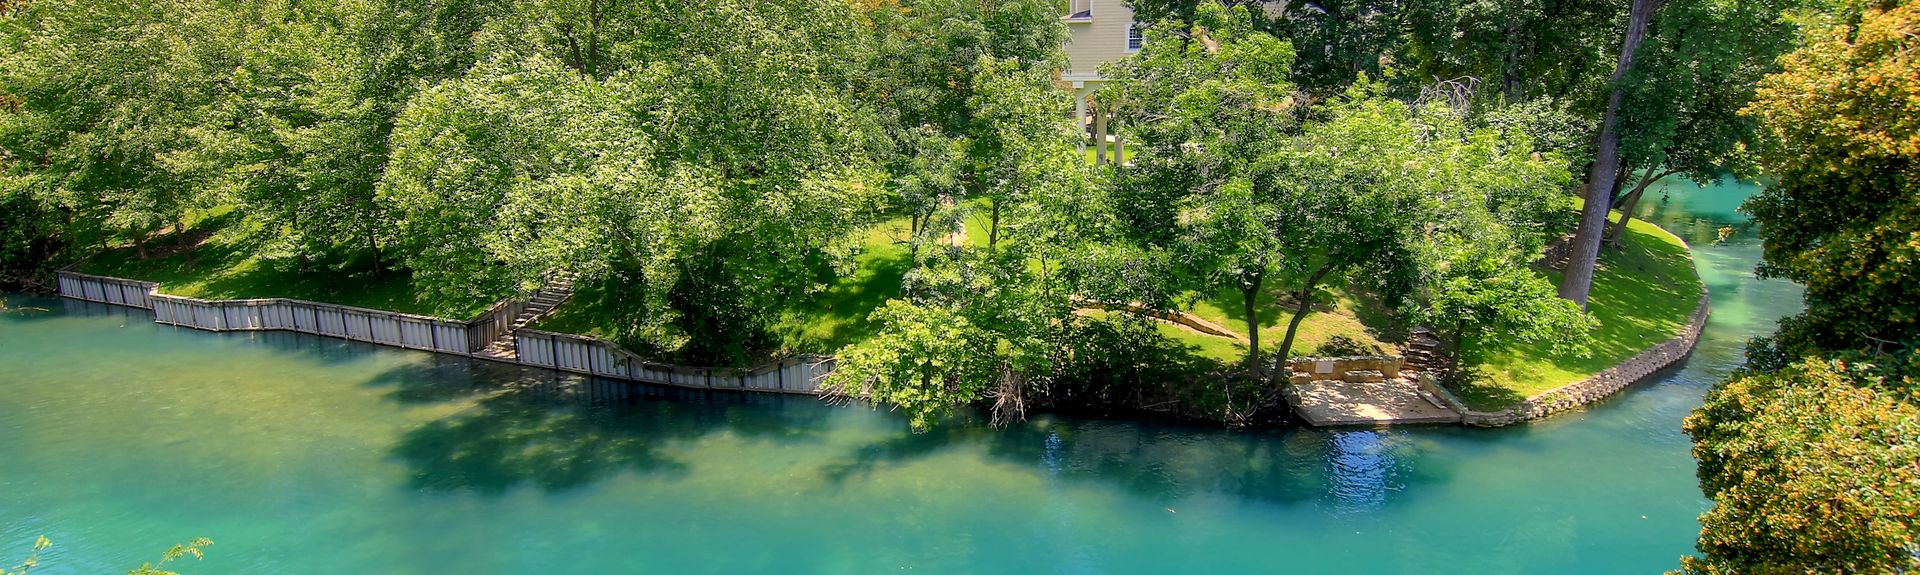 Comal River, New Braunfels, Texas, United States